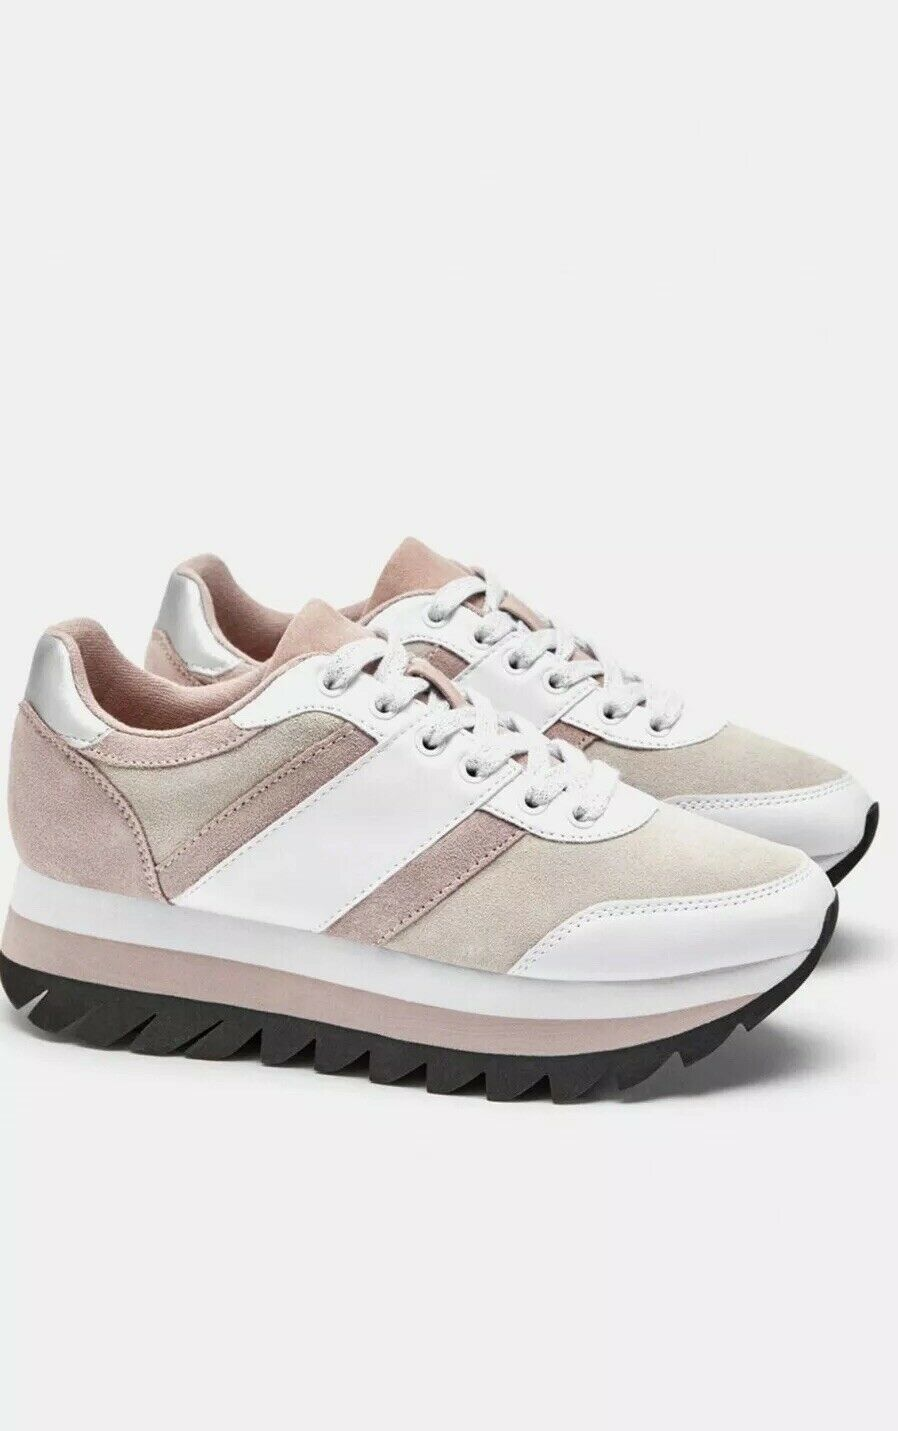 Zara Leather Pink   White Contrasting Lacecup Sneakers shoes  UK5 EU38 US7.5